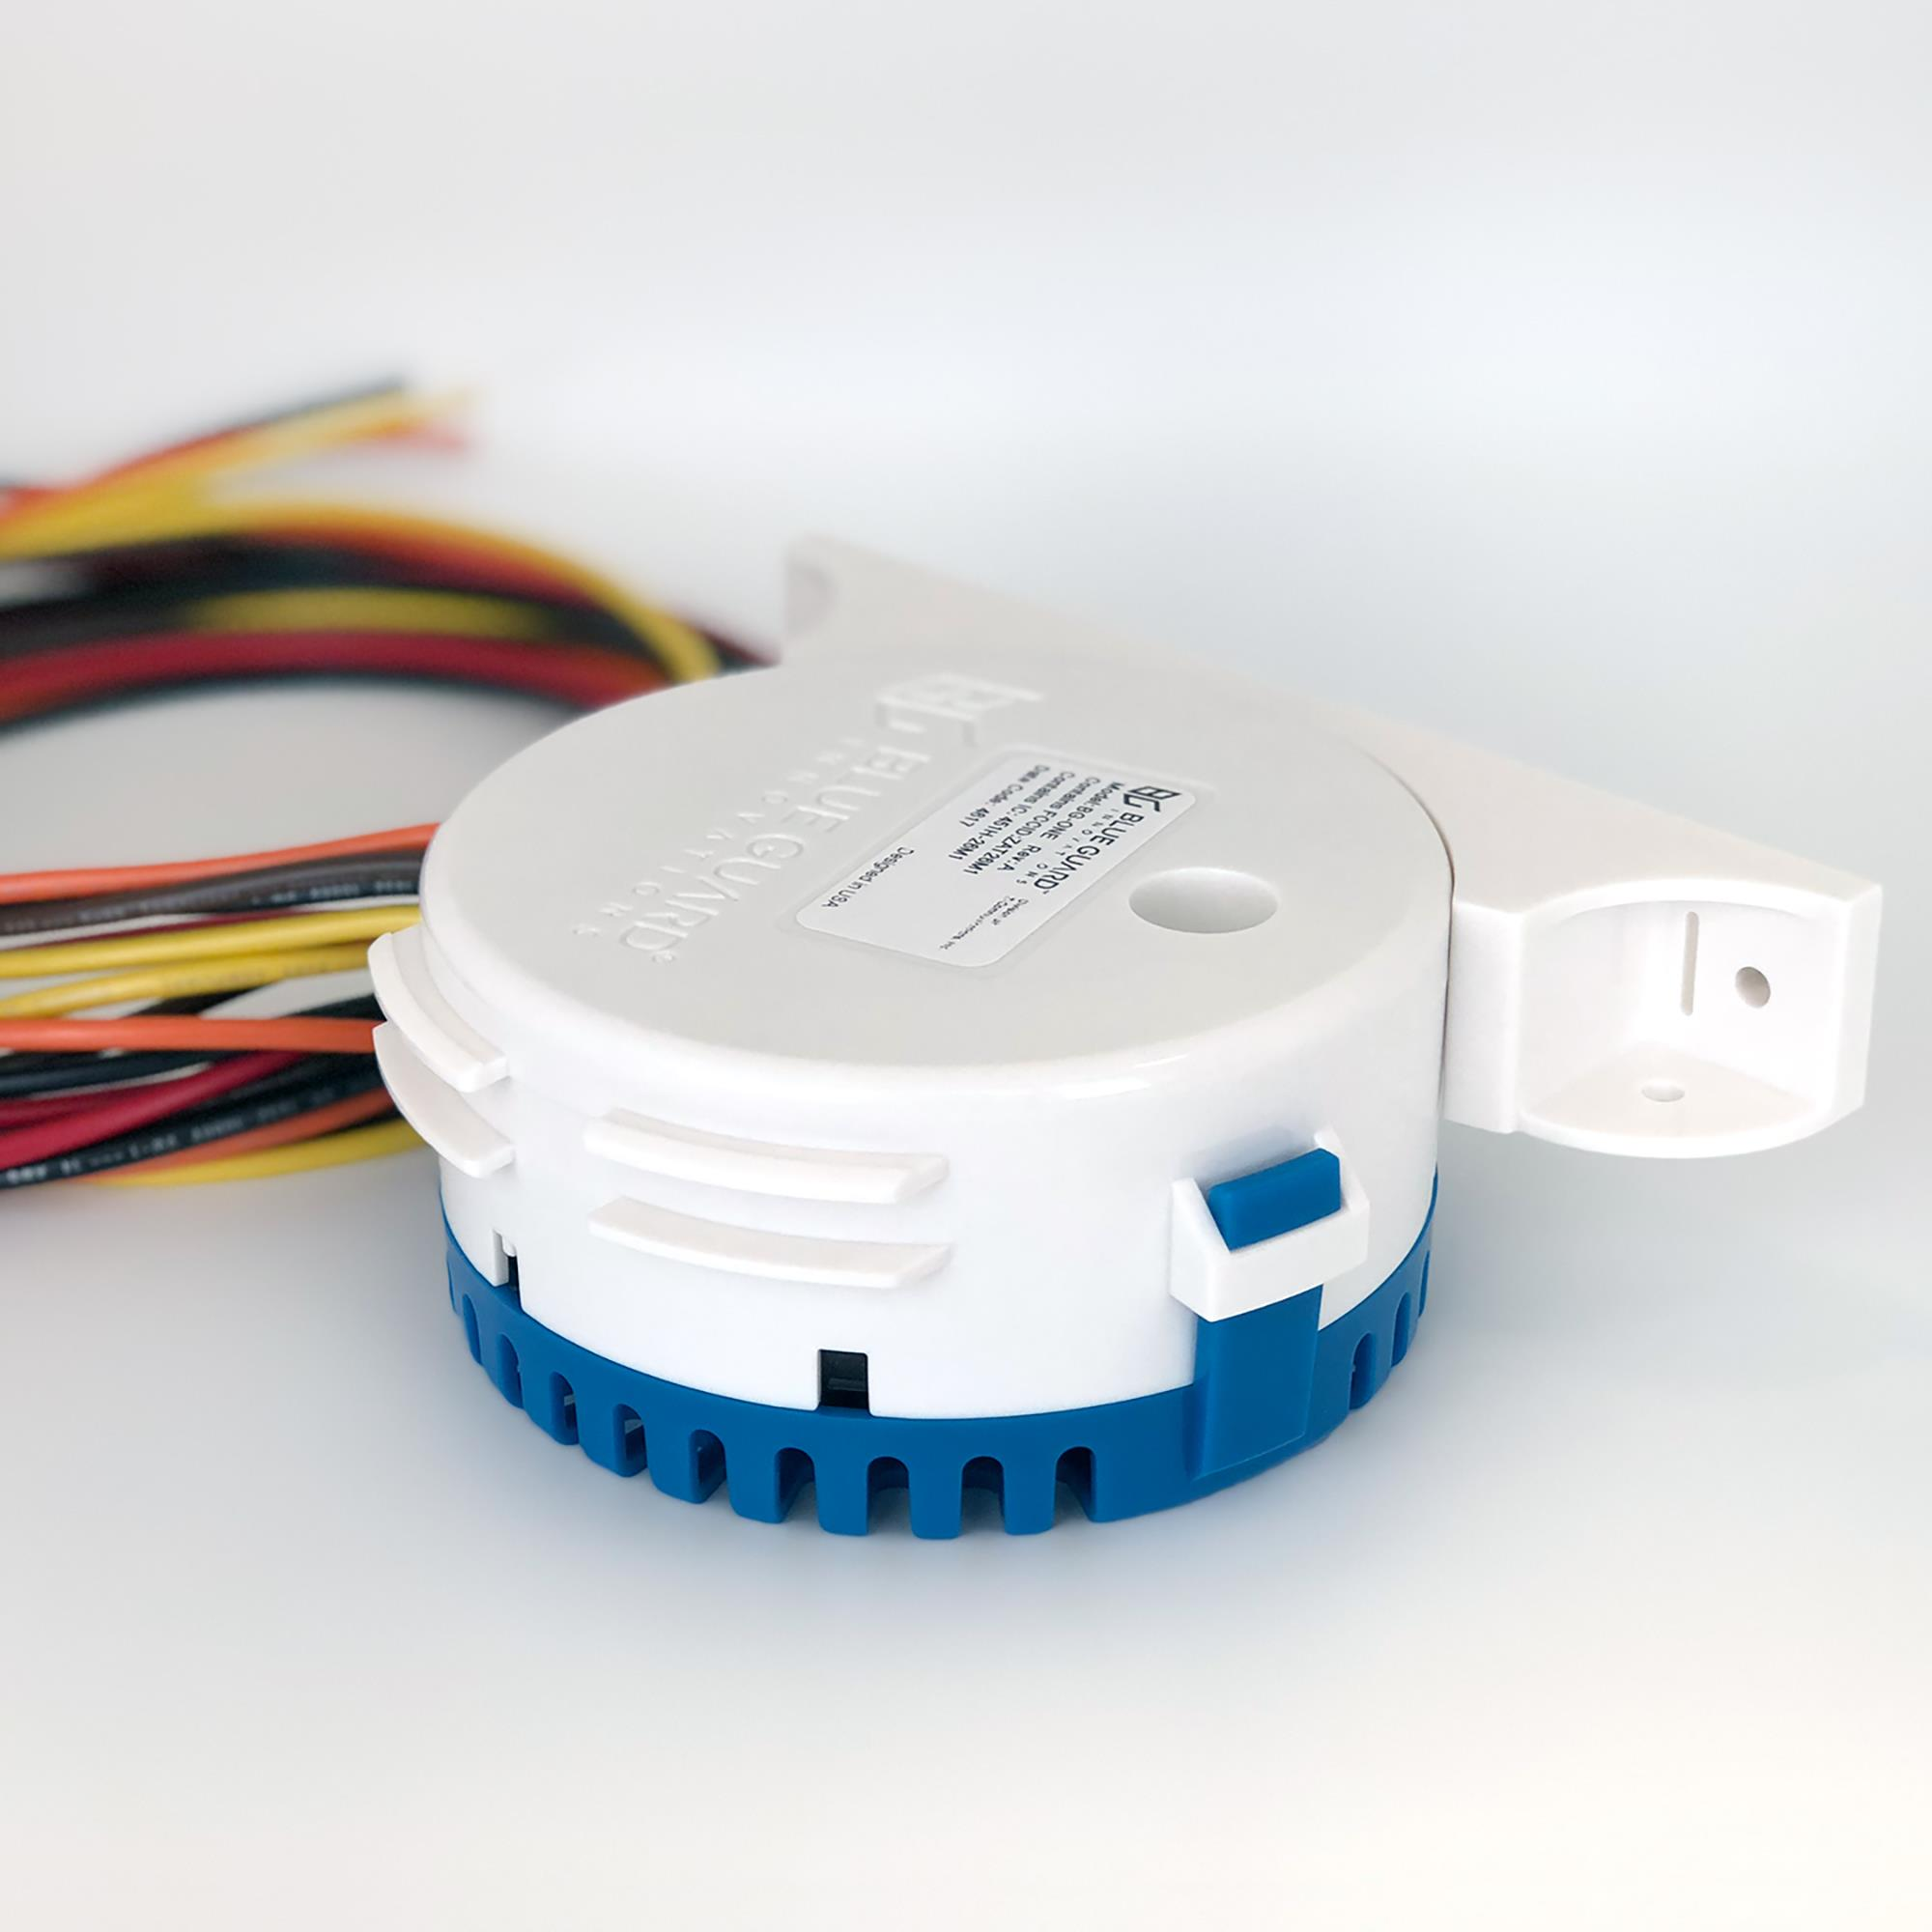 Dame Design Award 2018 Nominees Helical Wire Harness Lay Blue Guard Innovations Has Developed The Worlds First Smart Bilge Pump Switch With An Integrated Oil And Fuel Detector To Help Mitigate Risk Of